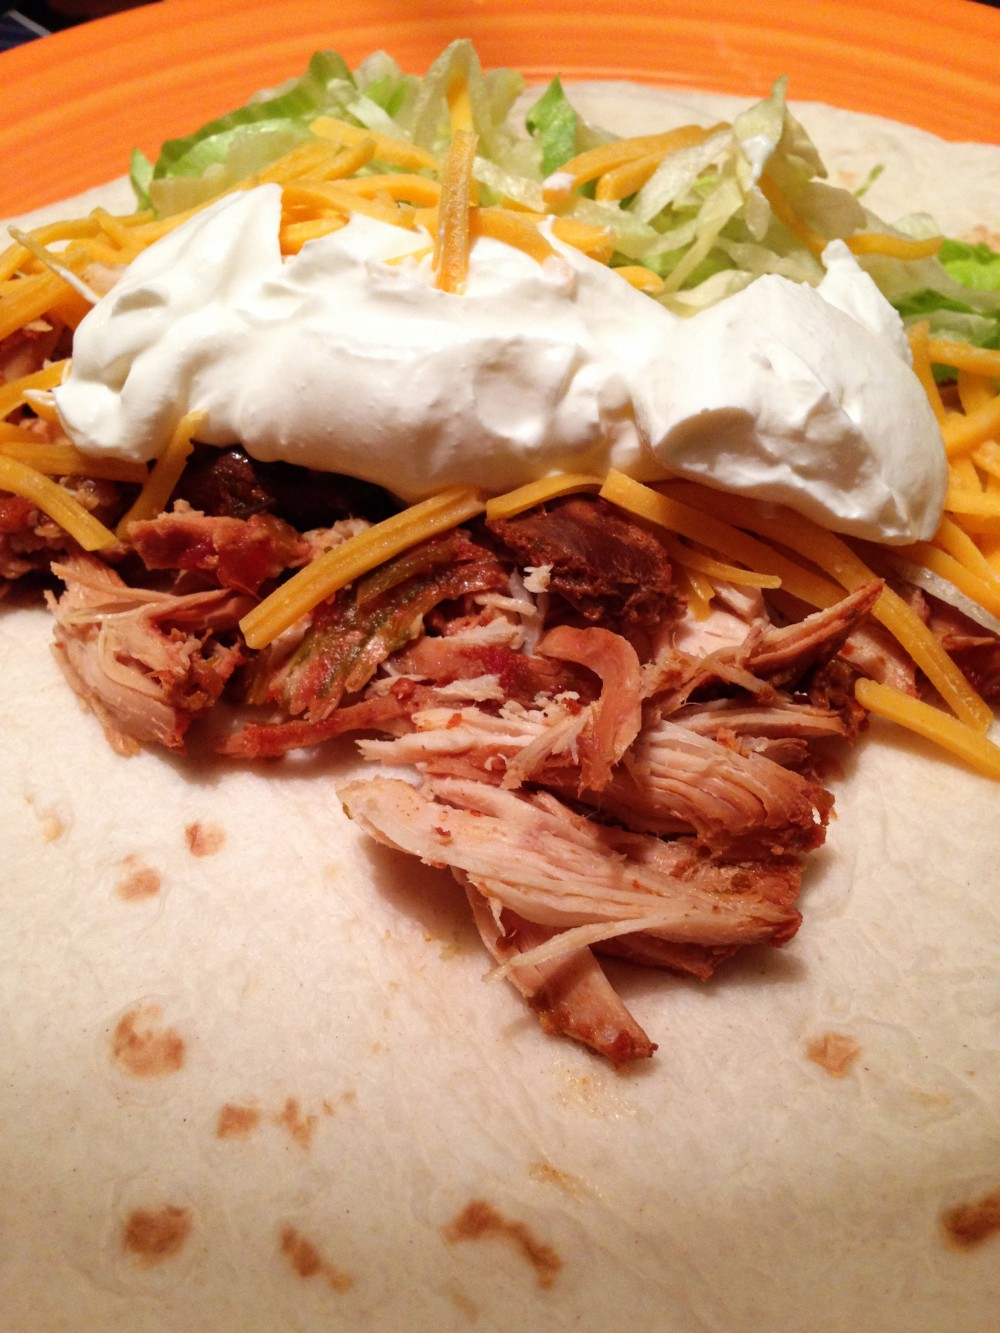 Shredded Chicken Taco